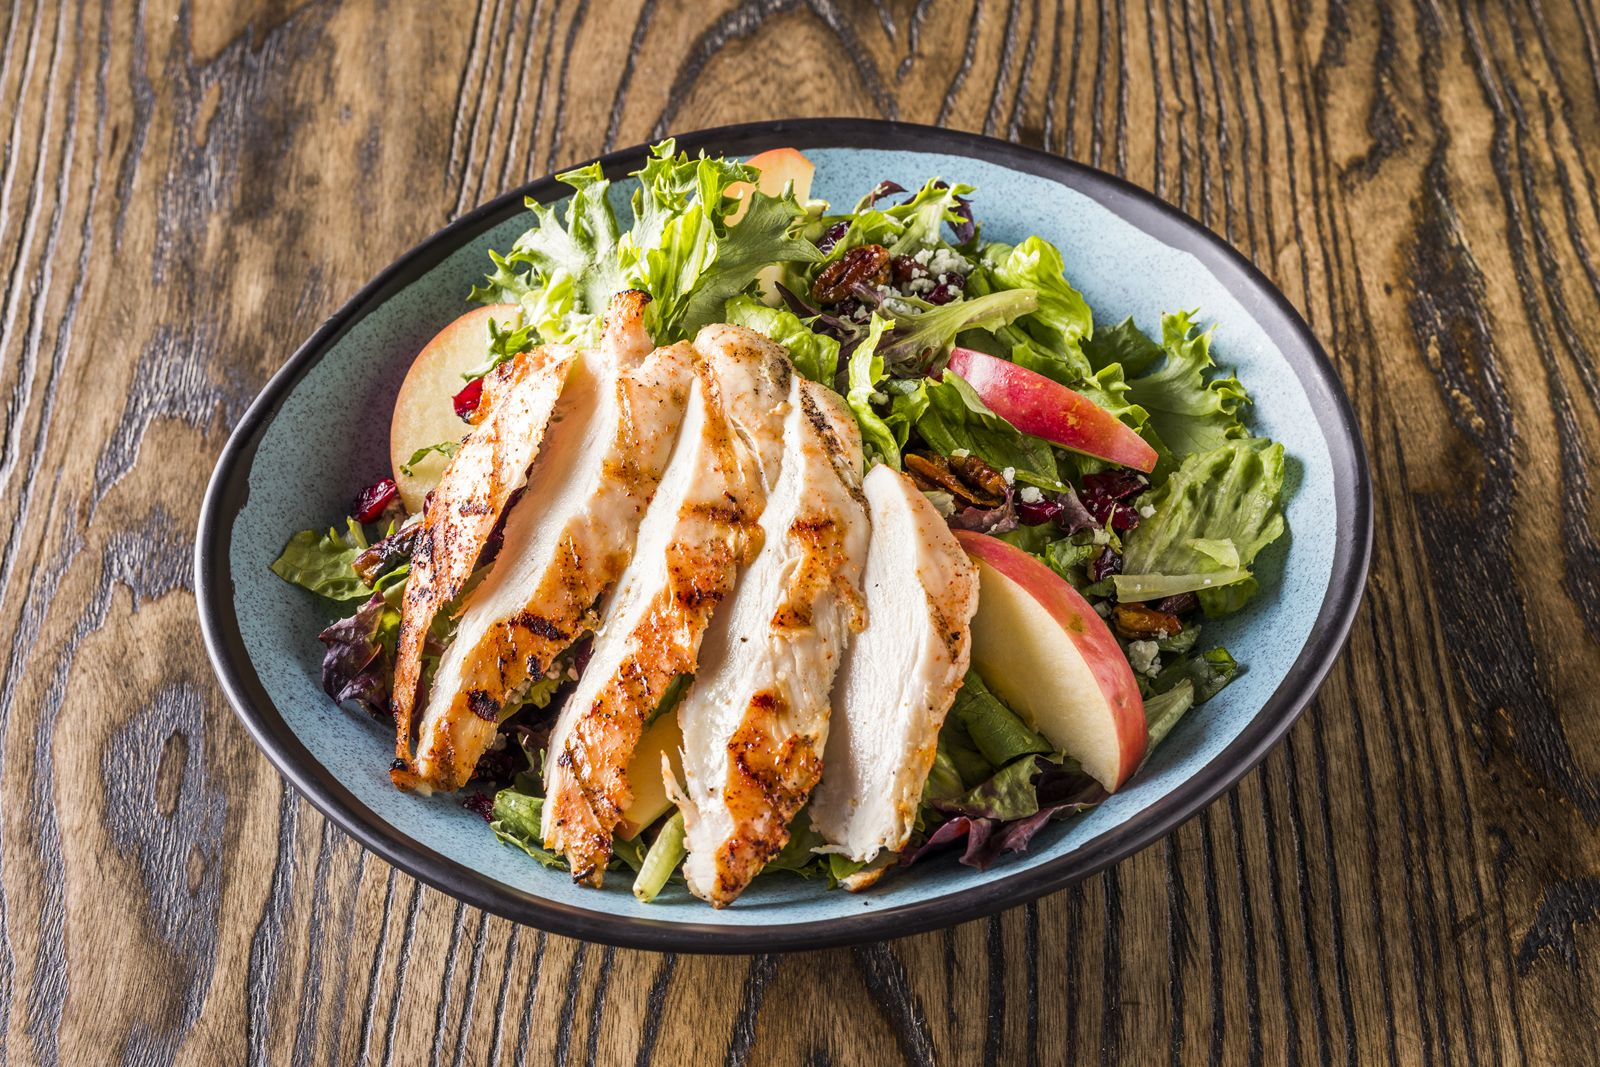 Wingers Introduces New Limited-Time Mouthwatering Salads